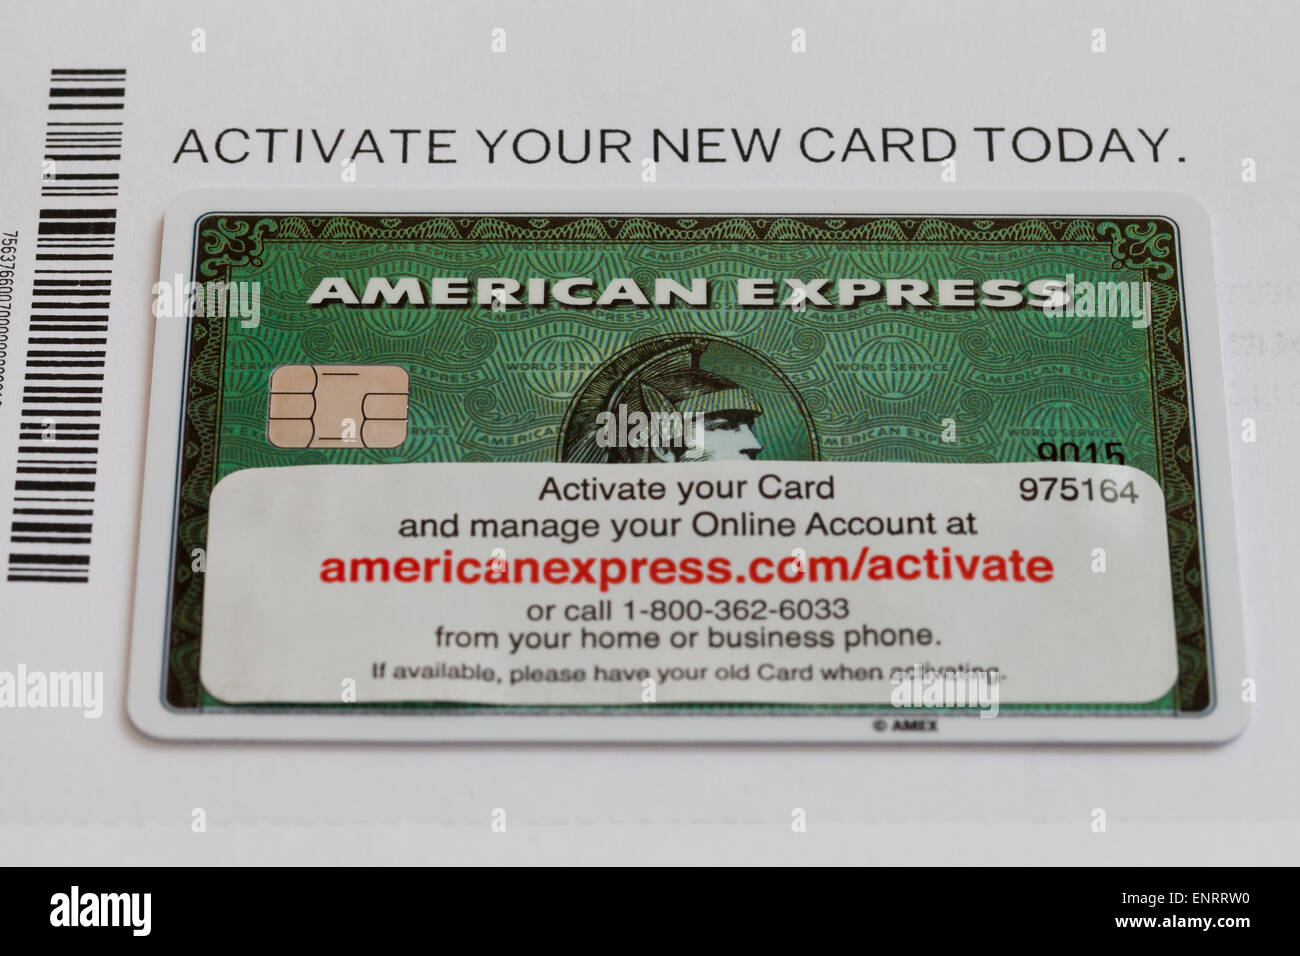 Credit cards american express amex gold business card stock new american express card with activation information usa stock photo magicingreecefo Choice Image